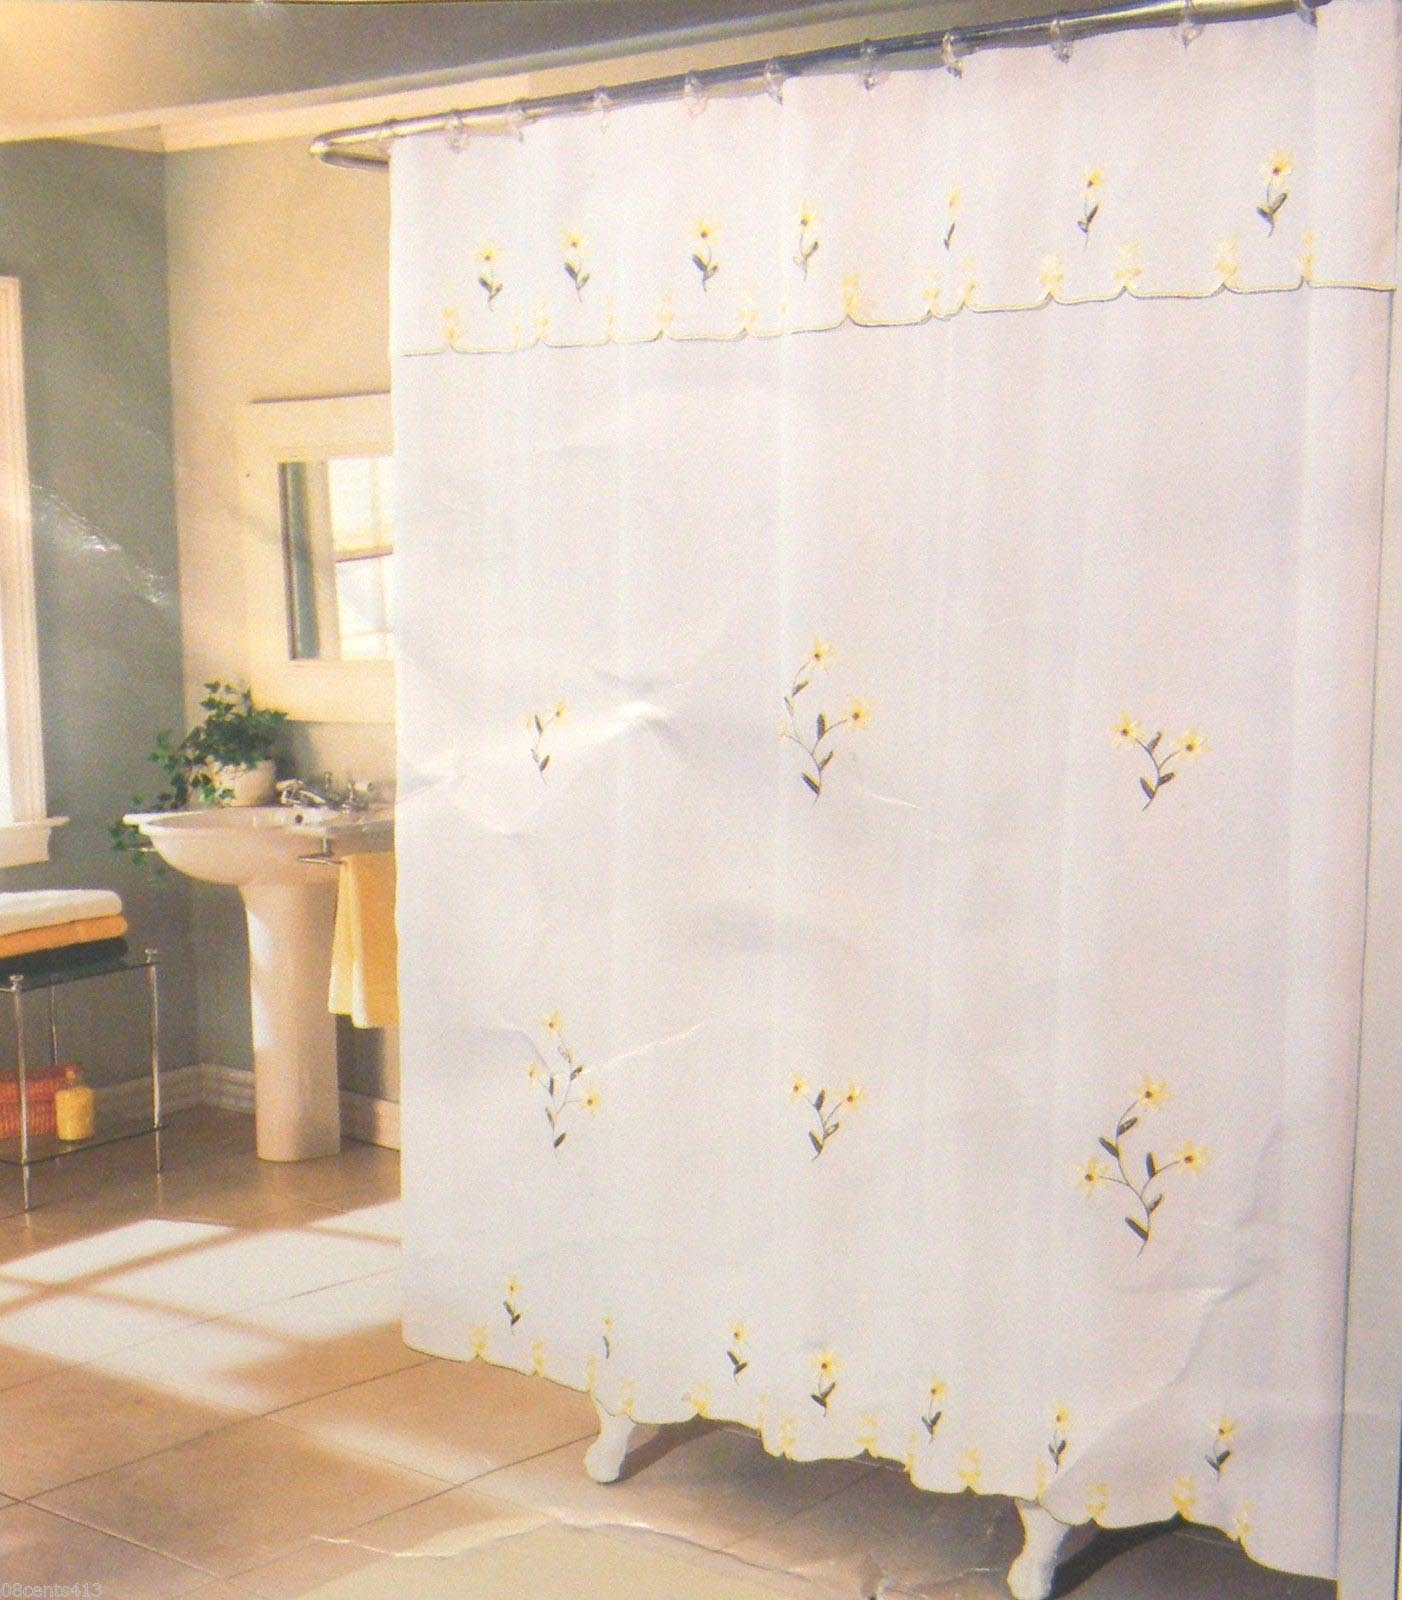 Shower Curtain Ideas. luxurious classic bathroom designs ideas ...